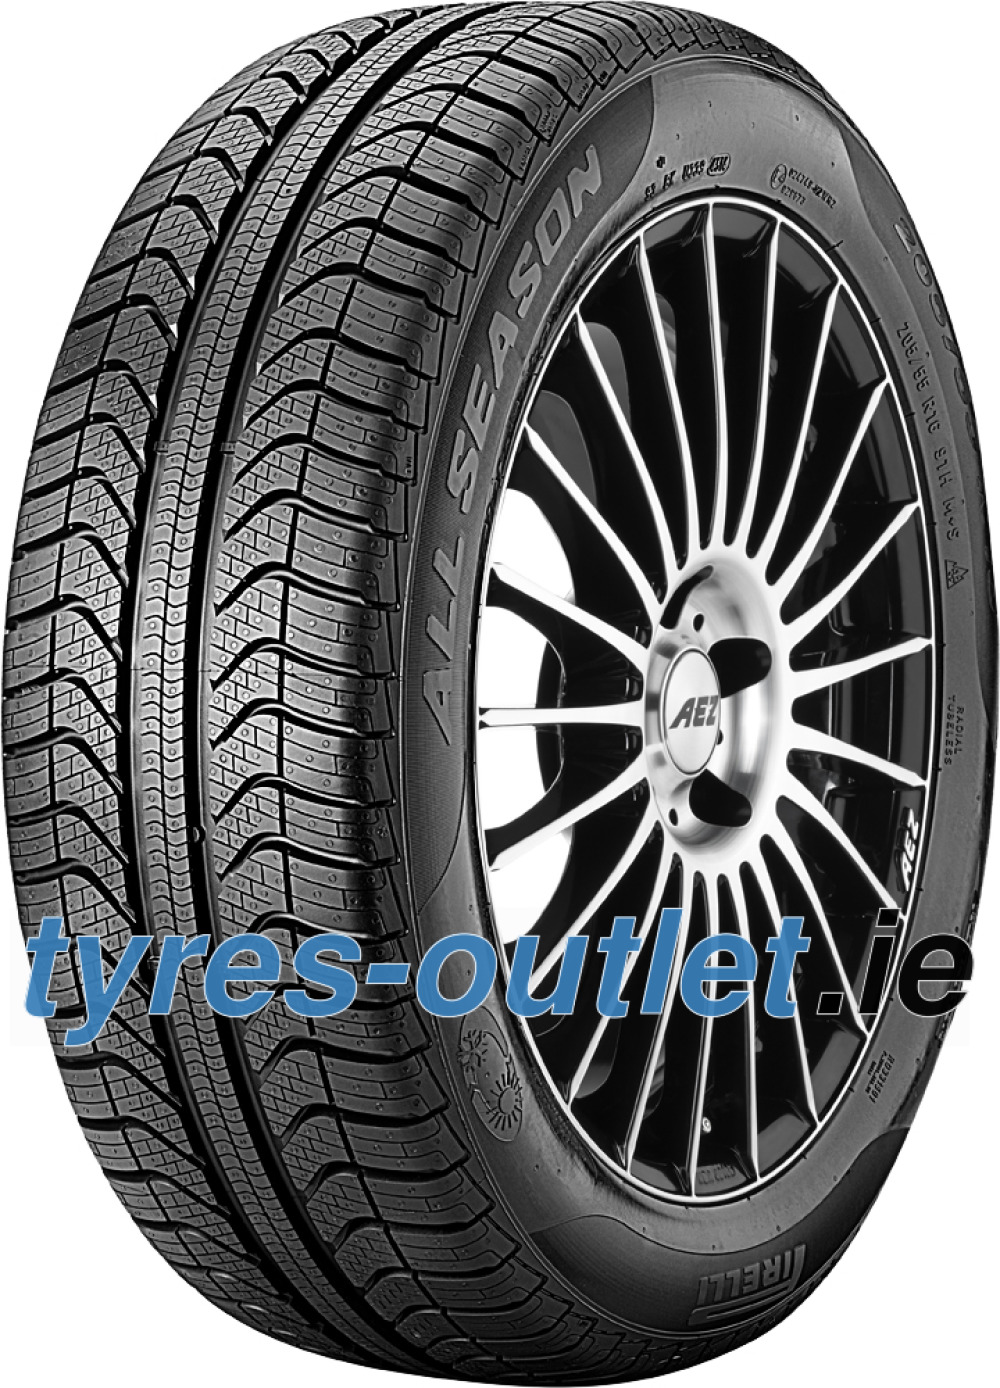 Pirelli Cinturato All Season ( 195/55 R16 87H , Seal Inside )